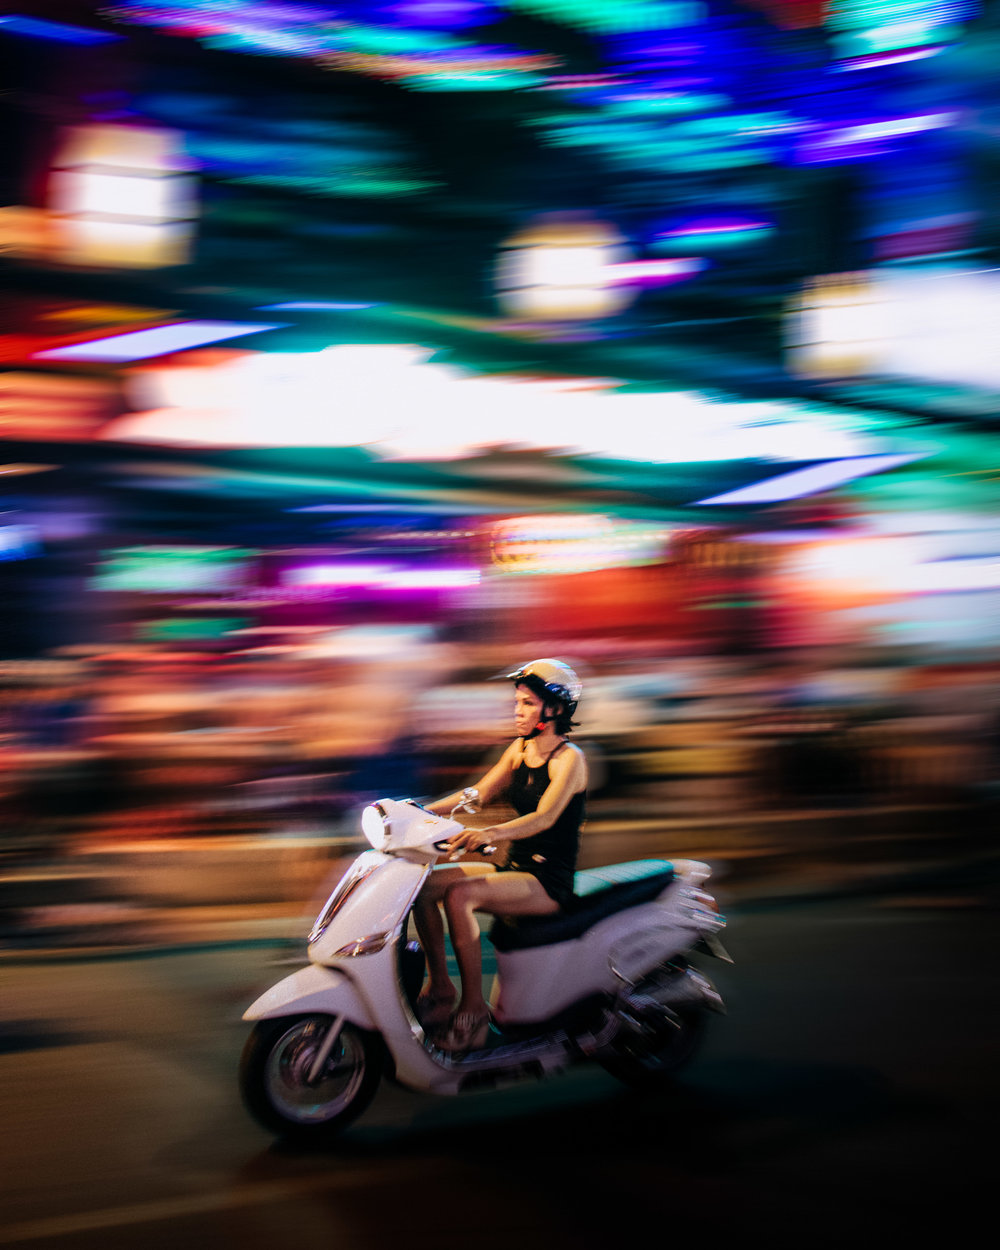 HCMC Night Scooter-16.jpg